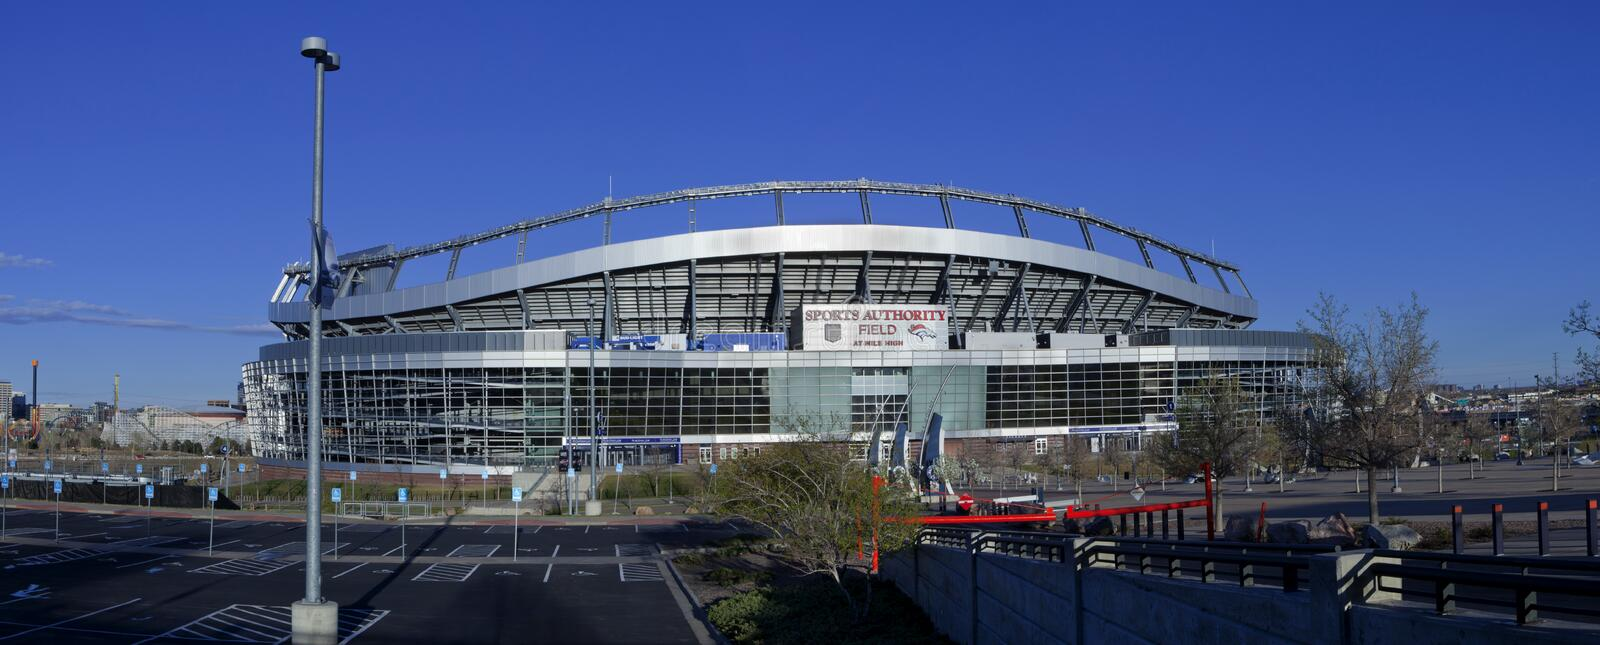 Sport-Berechtigungs-Feld am Mile High Stadium in Denver, lizenzfreies stockbild